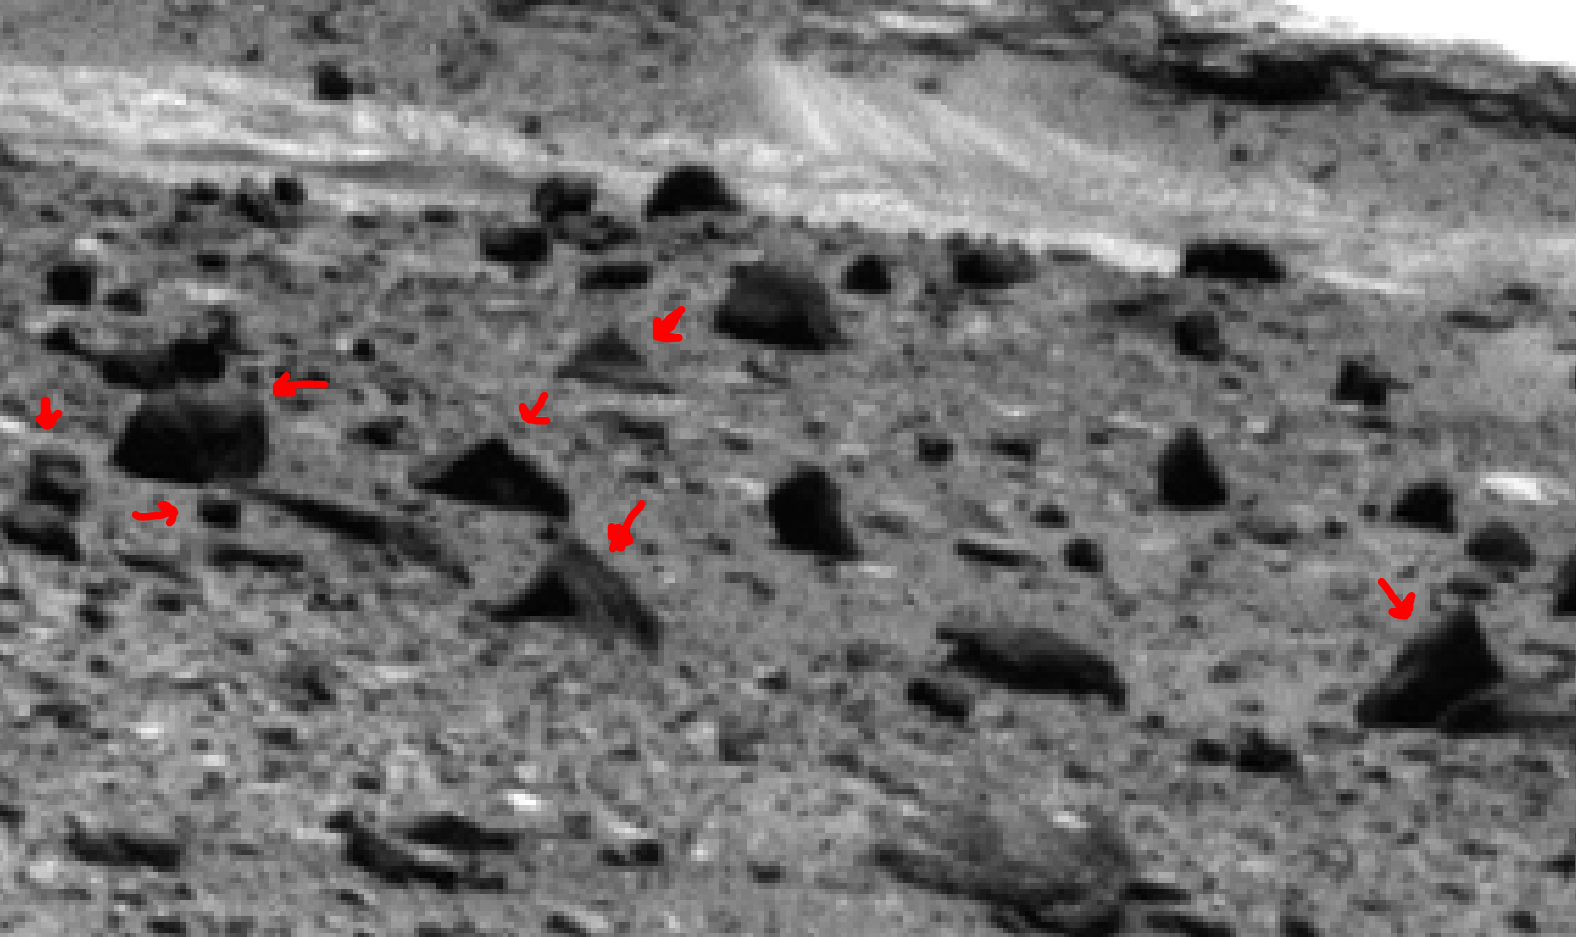 mars sol 1400 anomaly artifacts 6 was life on mars